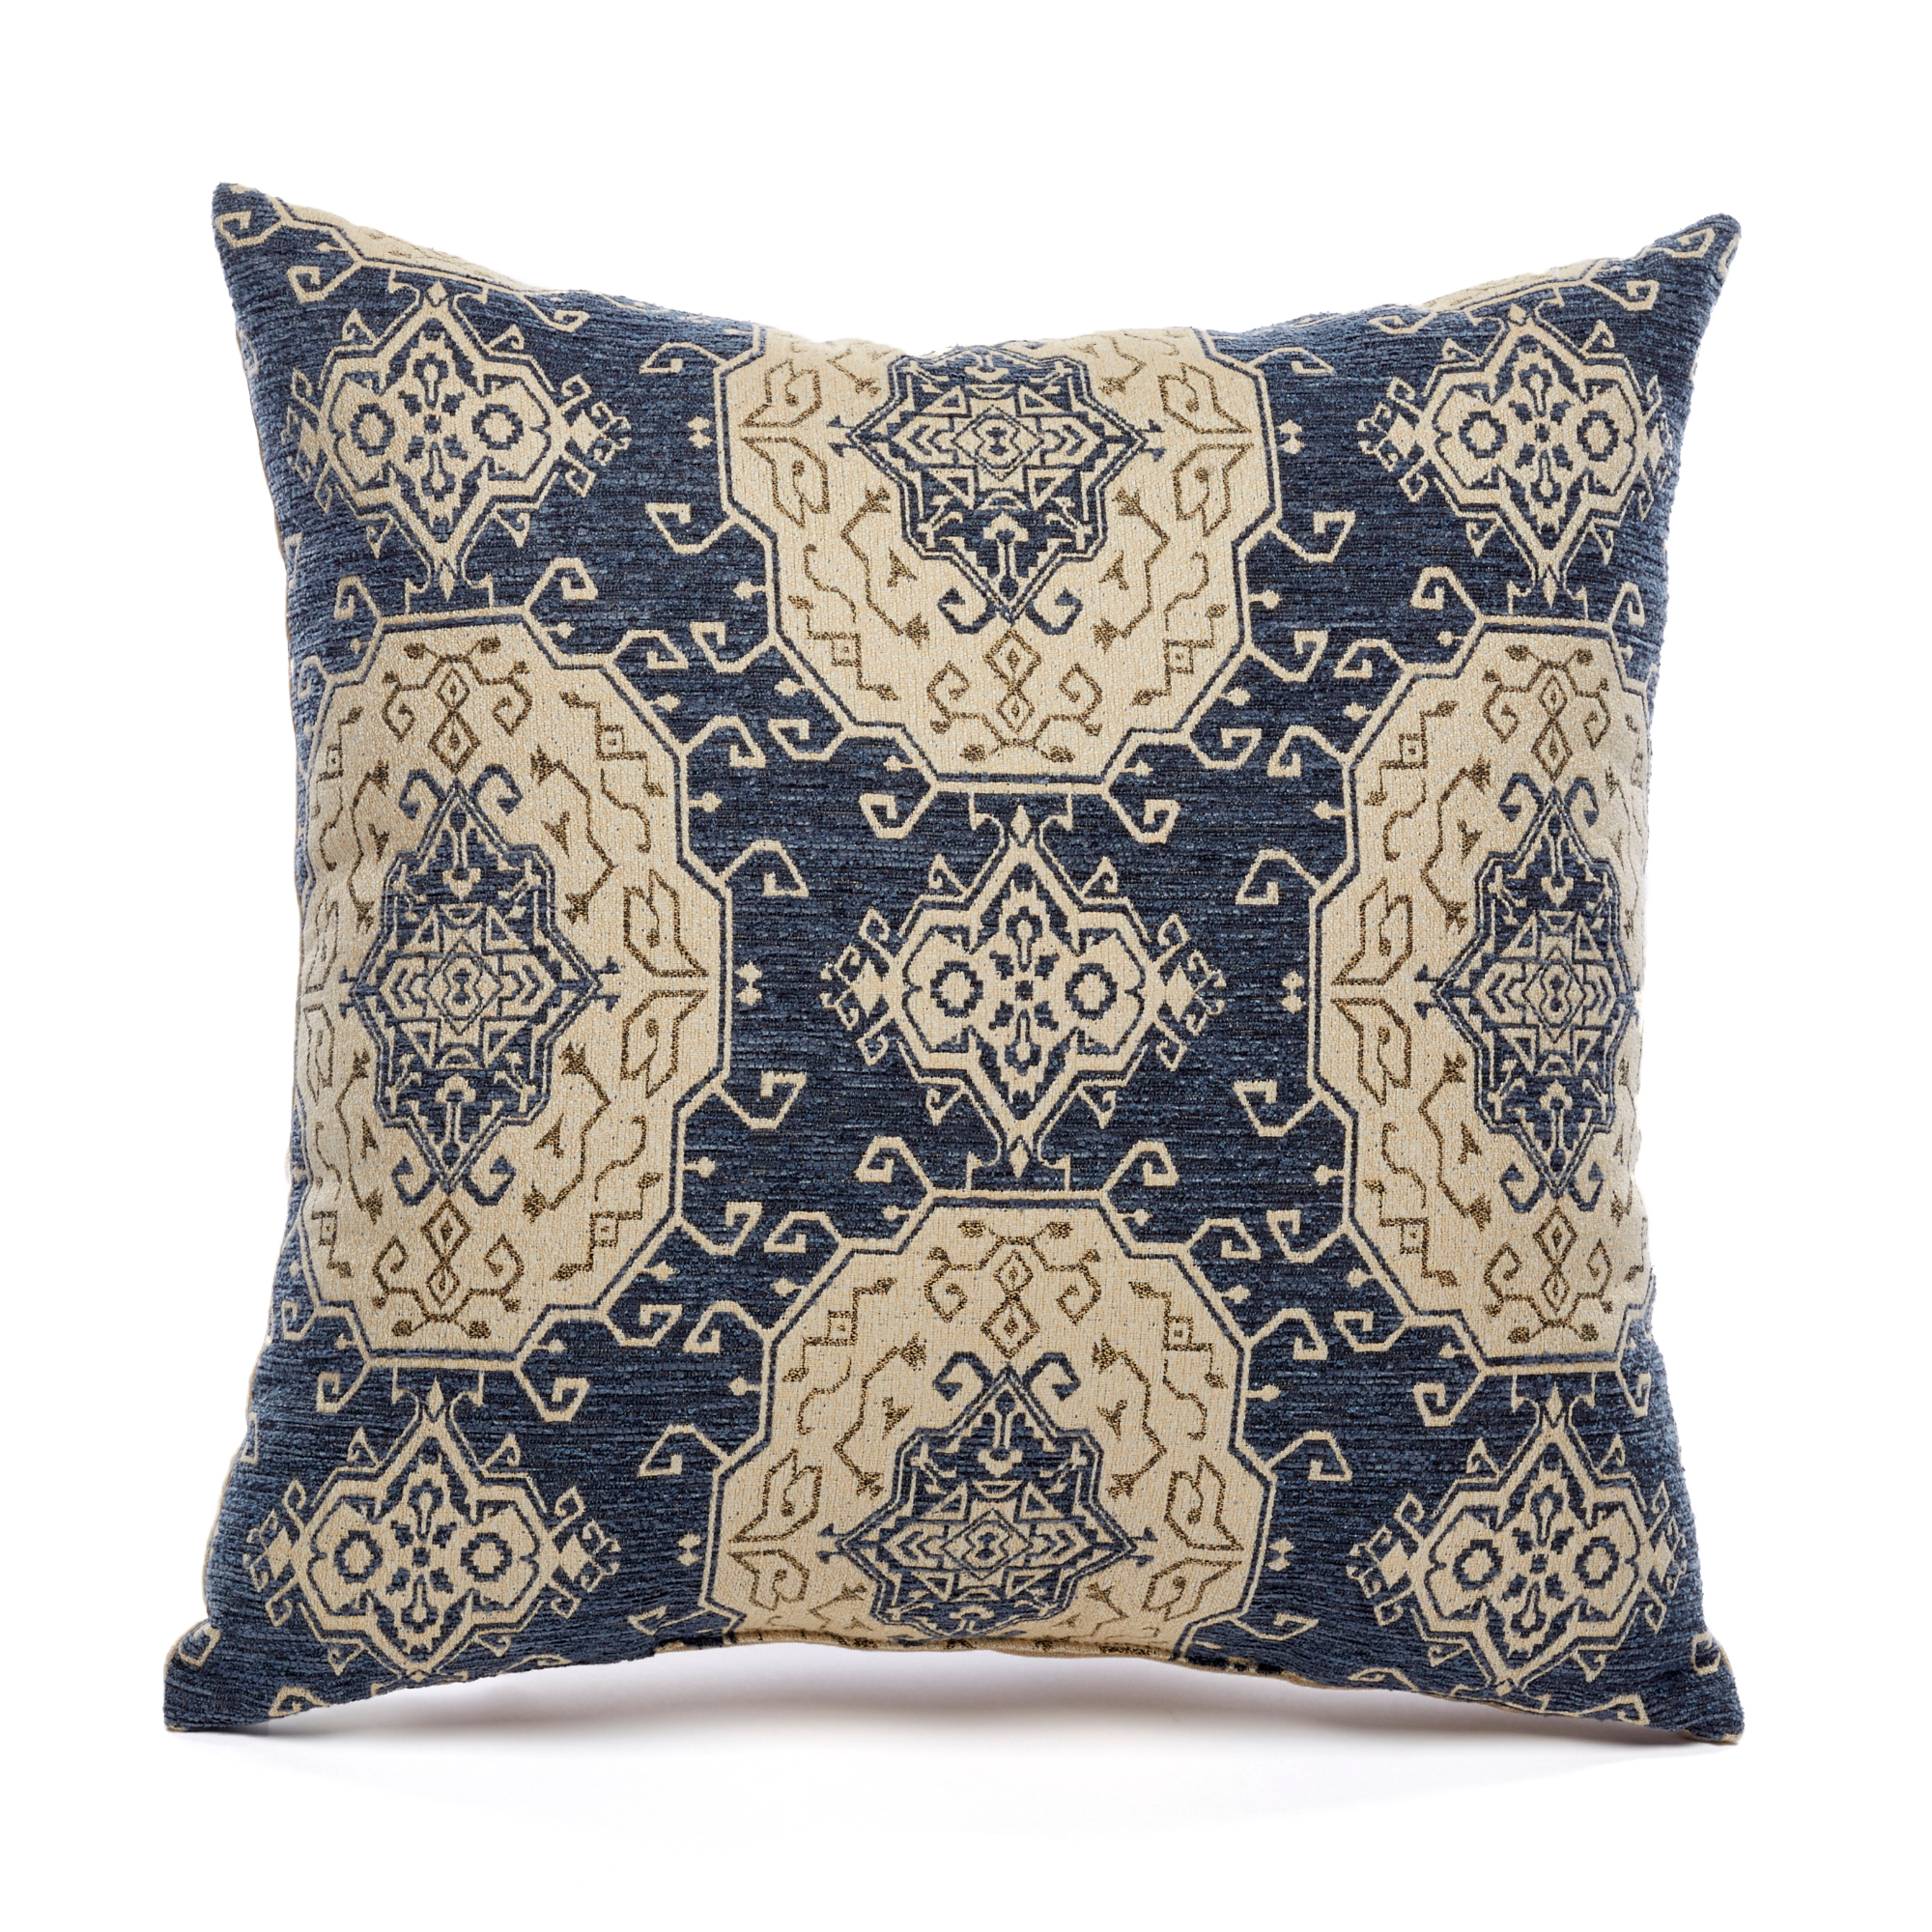 Arusha Global Pillow